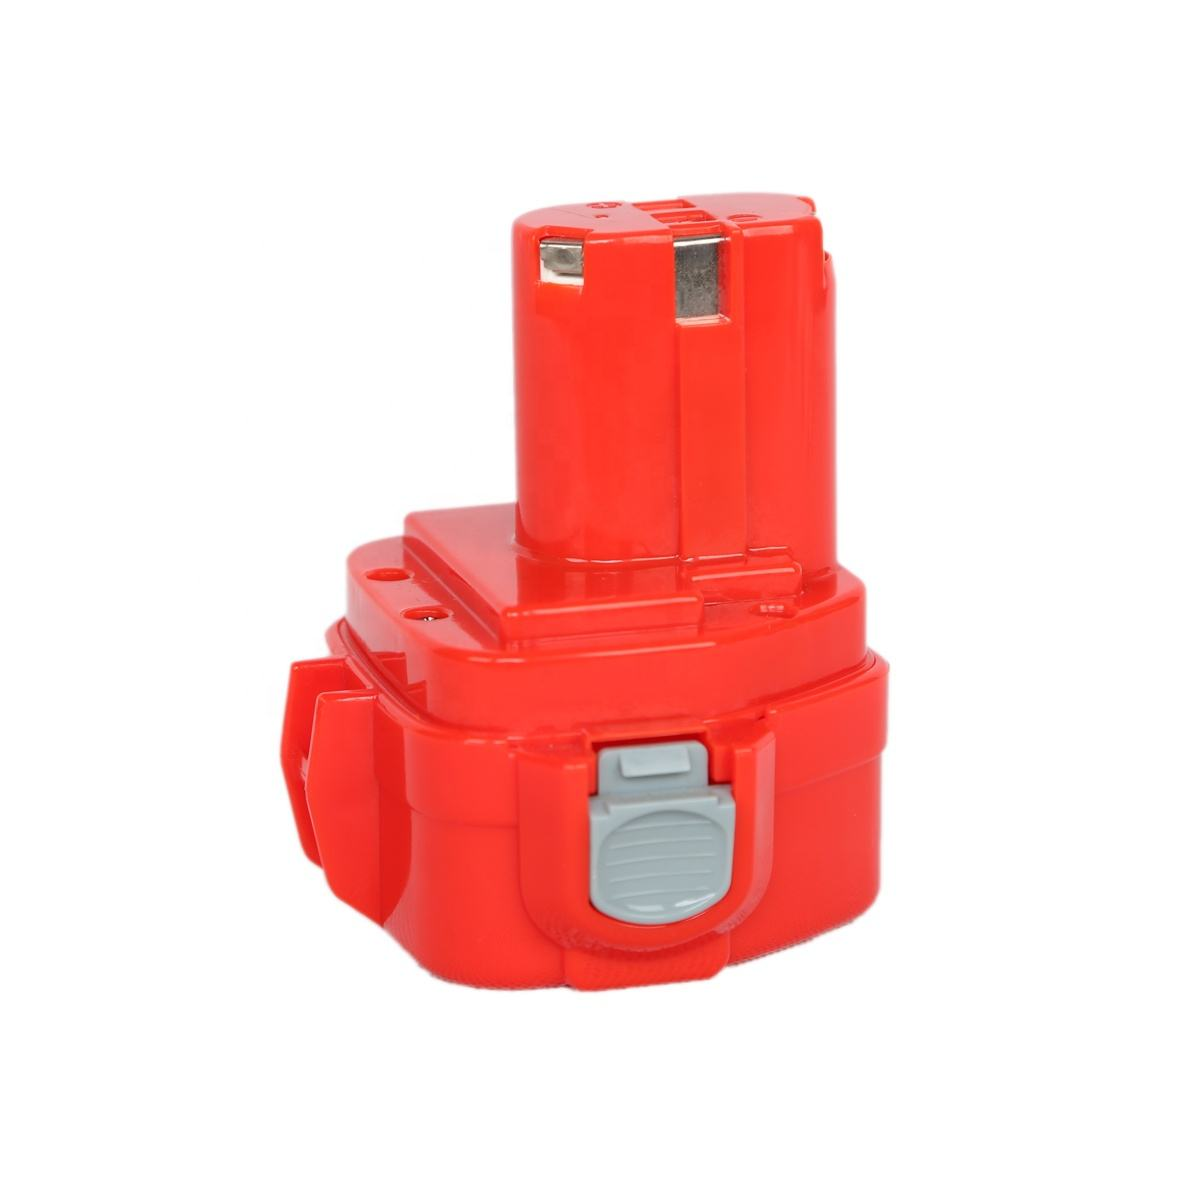 Rechargeable Cordless Drill Replacement battery for Makita 12V NI-CD 2.5A 1220 Power Tool Battery Pack